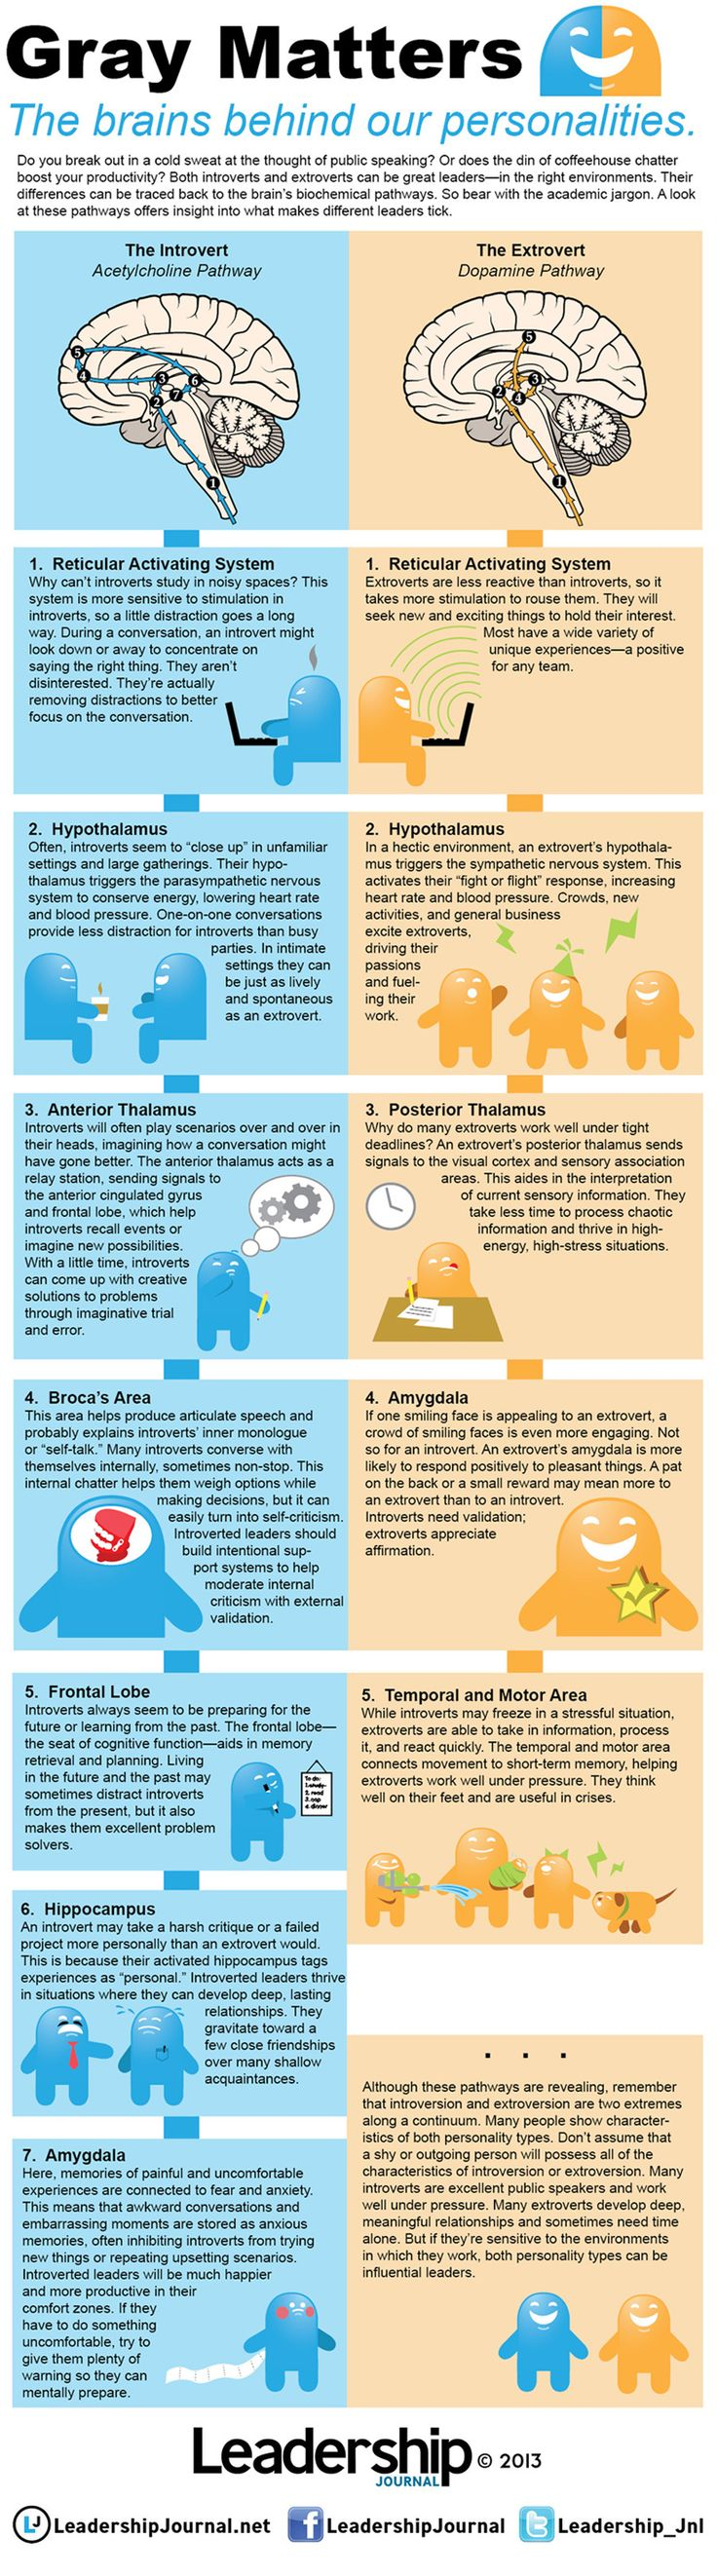 This explains the differences between how Introverts and Extroverts tend to process information in the Brain. Very interesting!